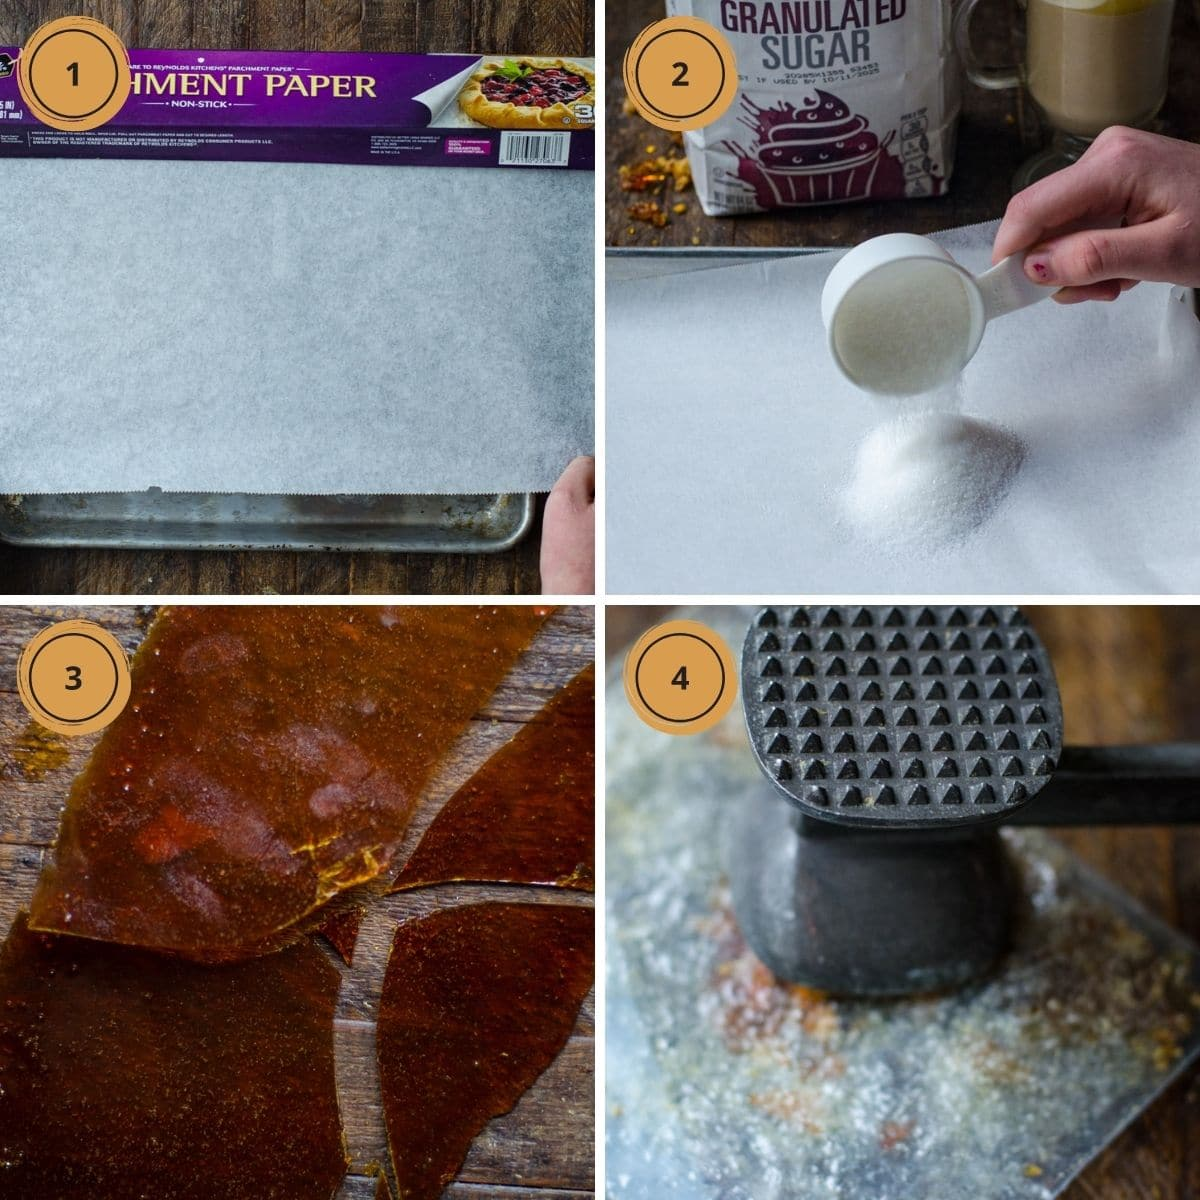 Four steps showing how to make brulee sugar.